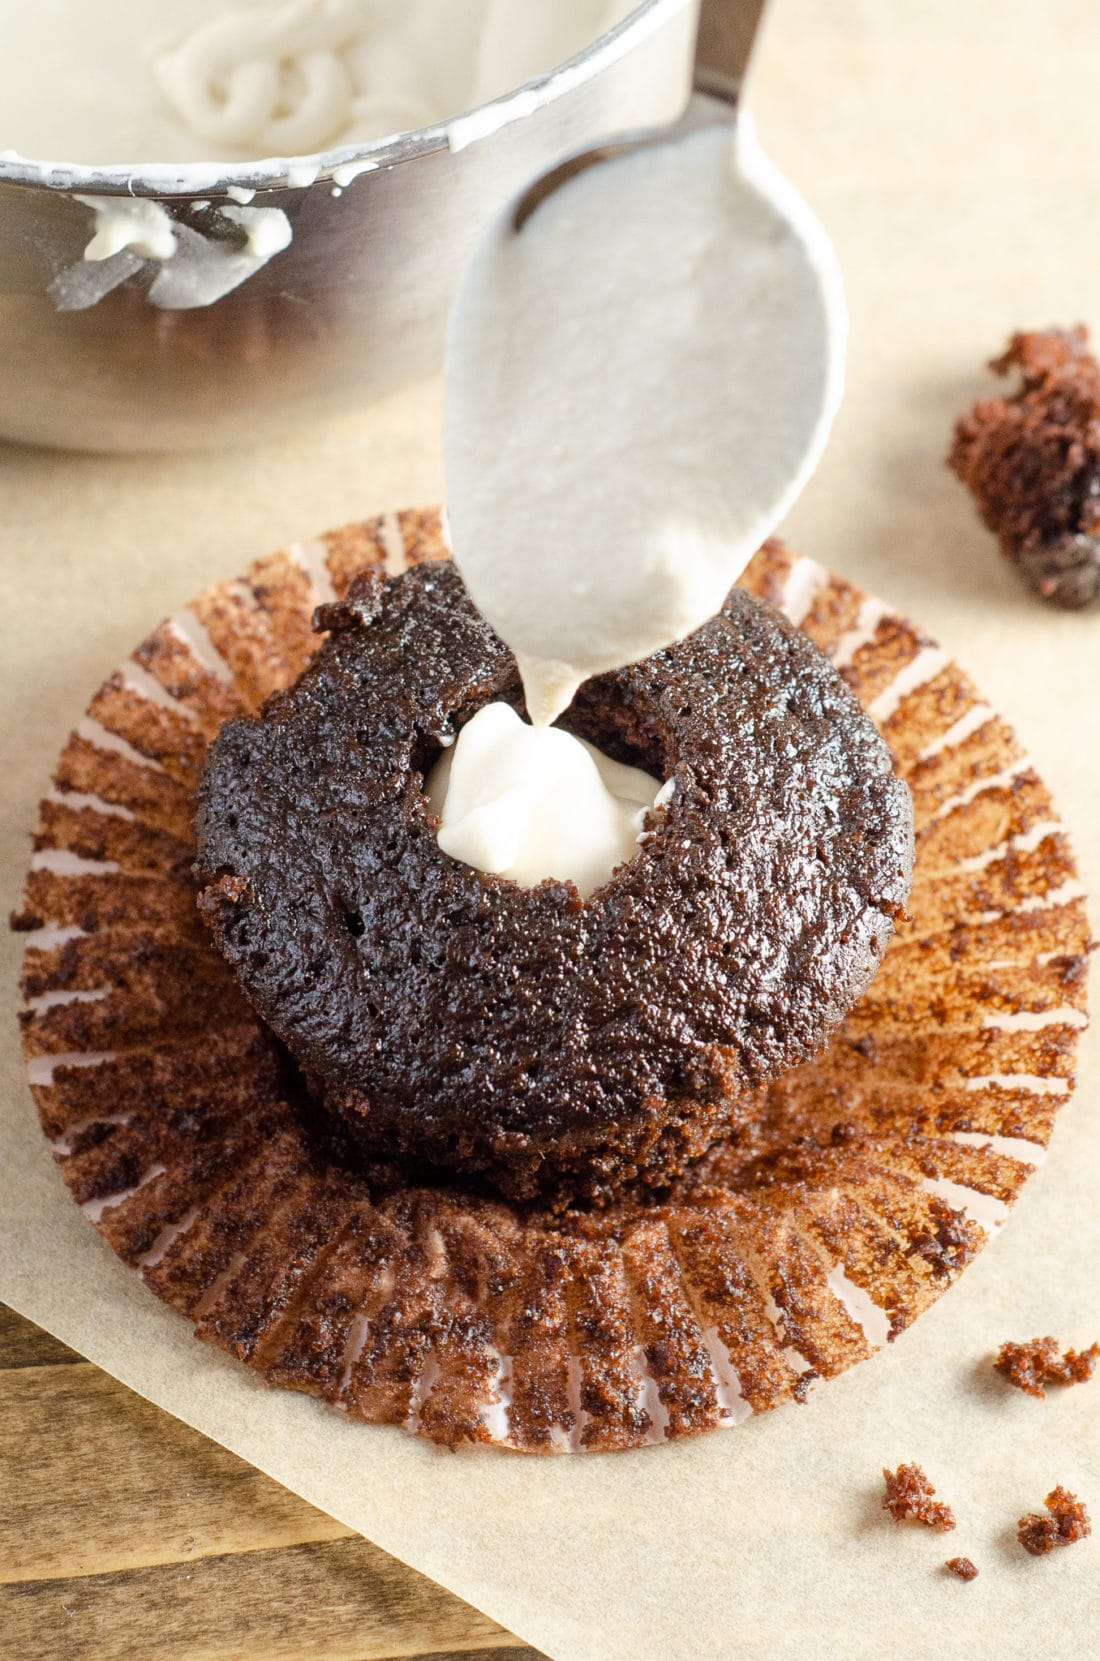 Chocolate Cupcake with Marshmallow Creme Filling Added. Sink your teeth into a childhood favorite cupcake that is as easy to bake as it is to eat. My Chocolate cupcakes with Chocolate Buttercream frosting and marshmallow creme filling will make the kid in you cheer.